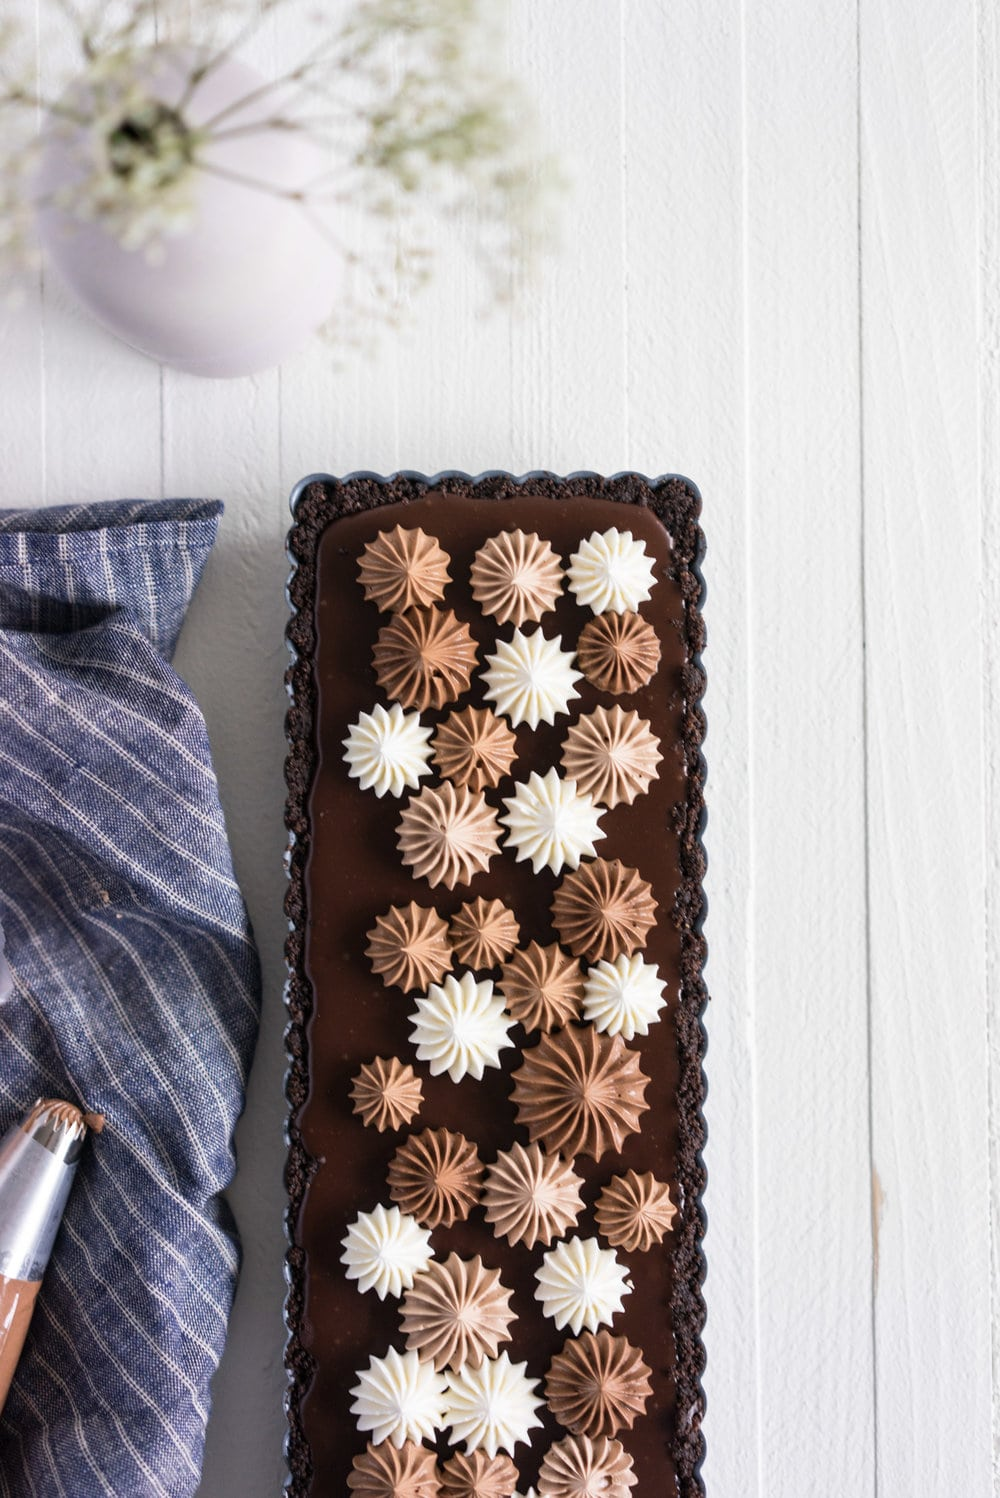 Milk Chocolate Earl Grey Tart with Ombre Dark Chocolate Swiss Meringue Buttercream. A press in cookie crust is topped with a silky earl grey infused ganache filling, then finished with an ombre swiss meringue buttercream.